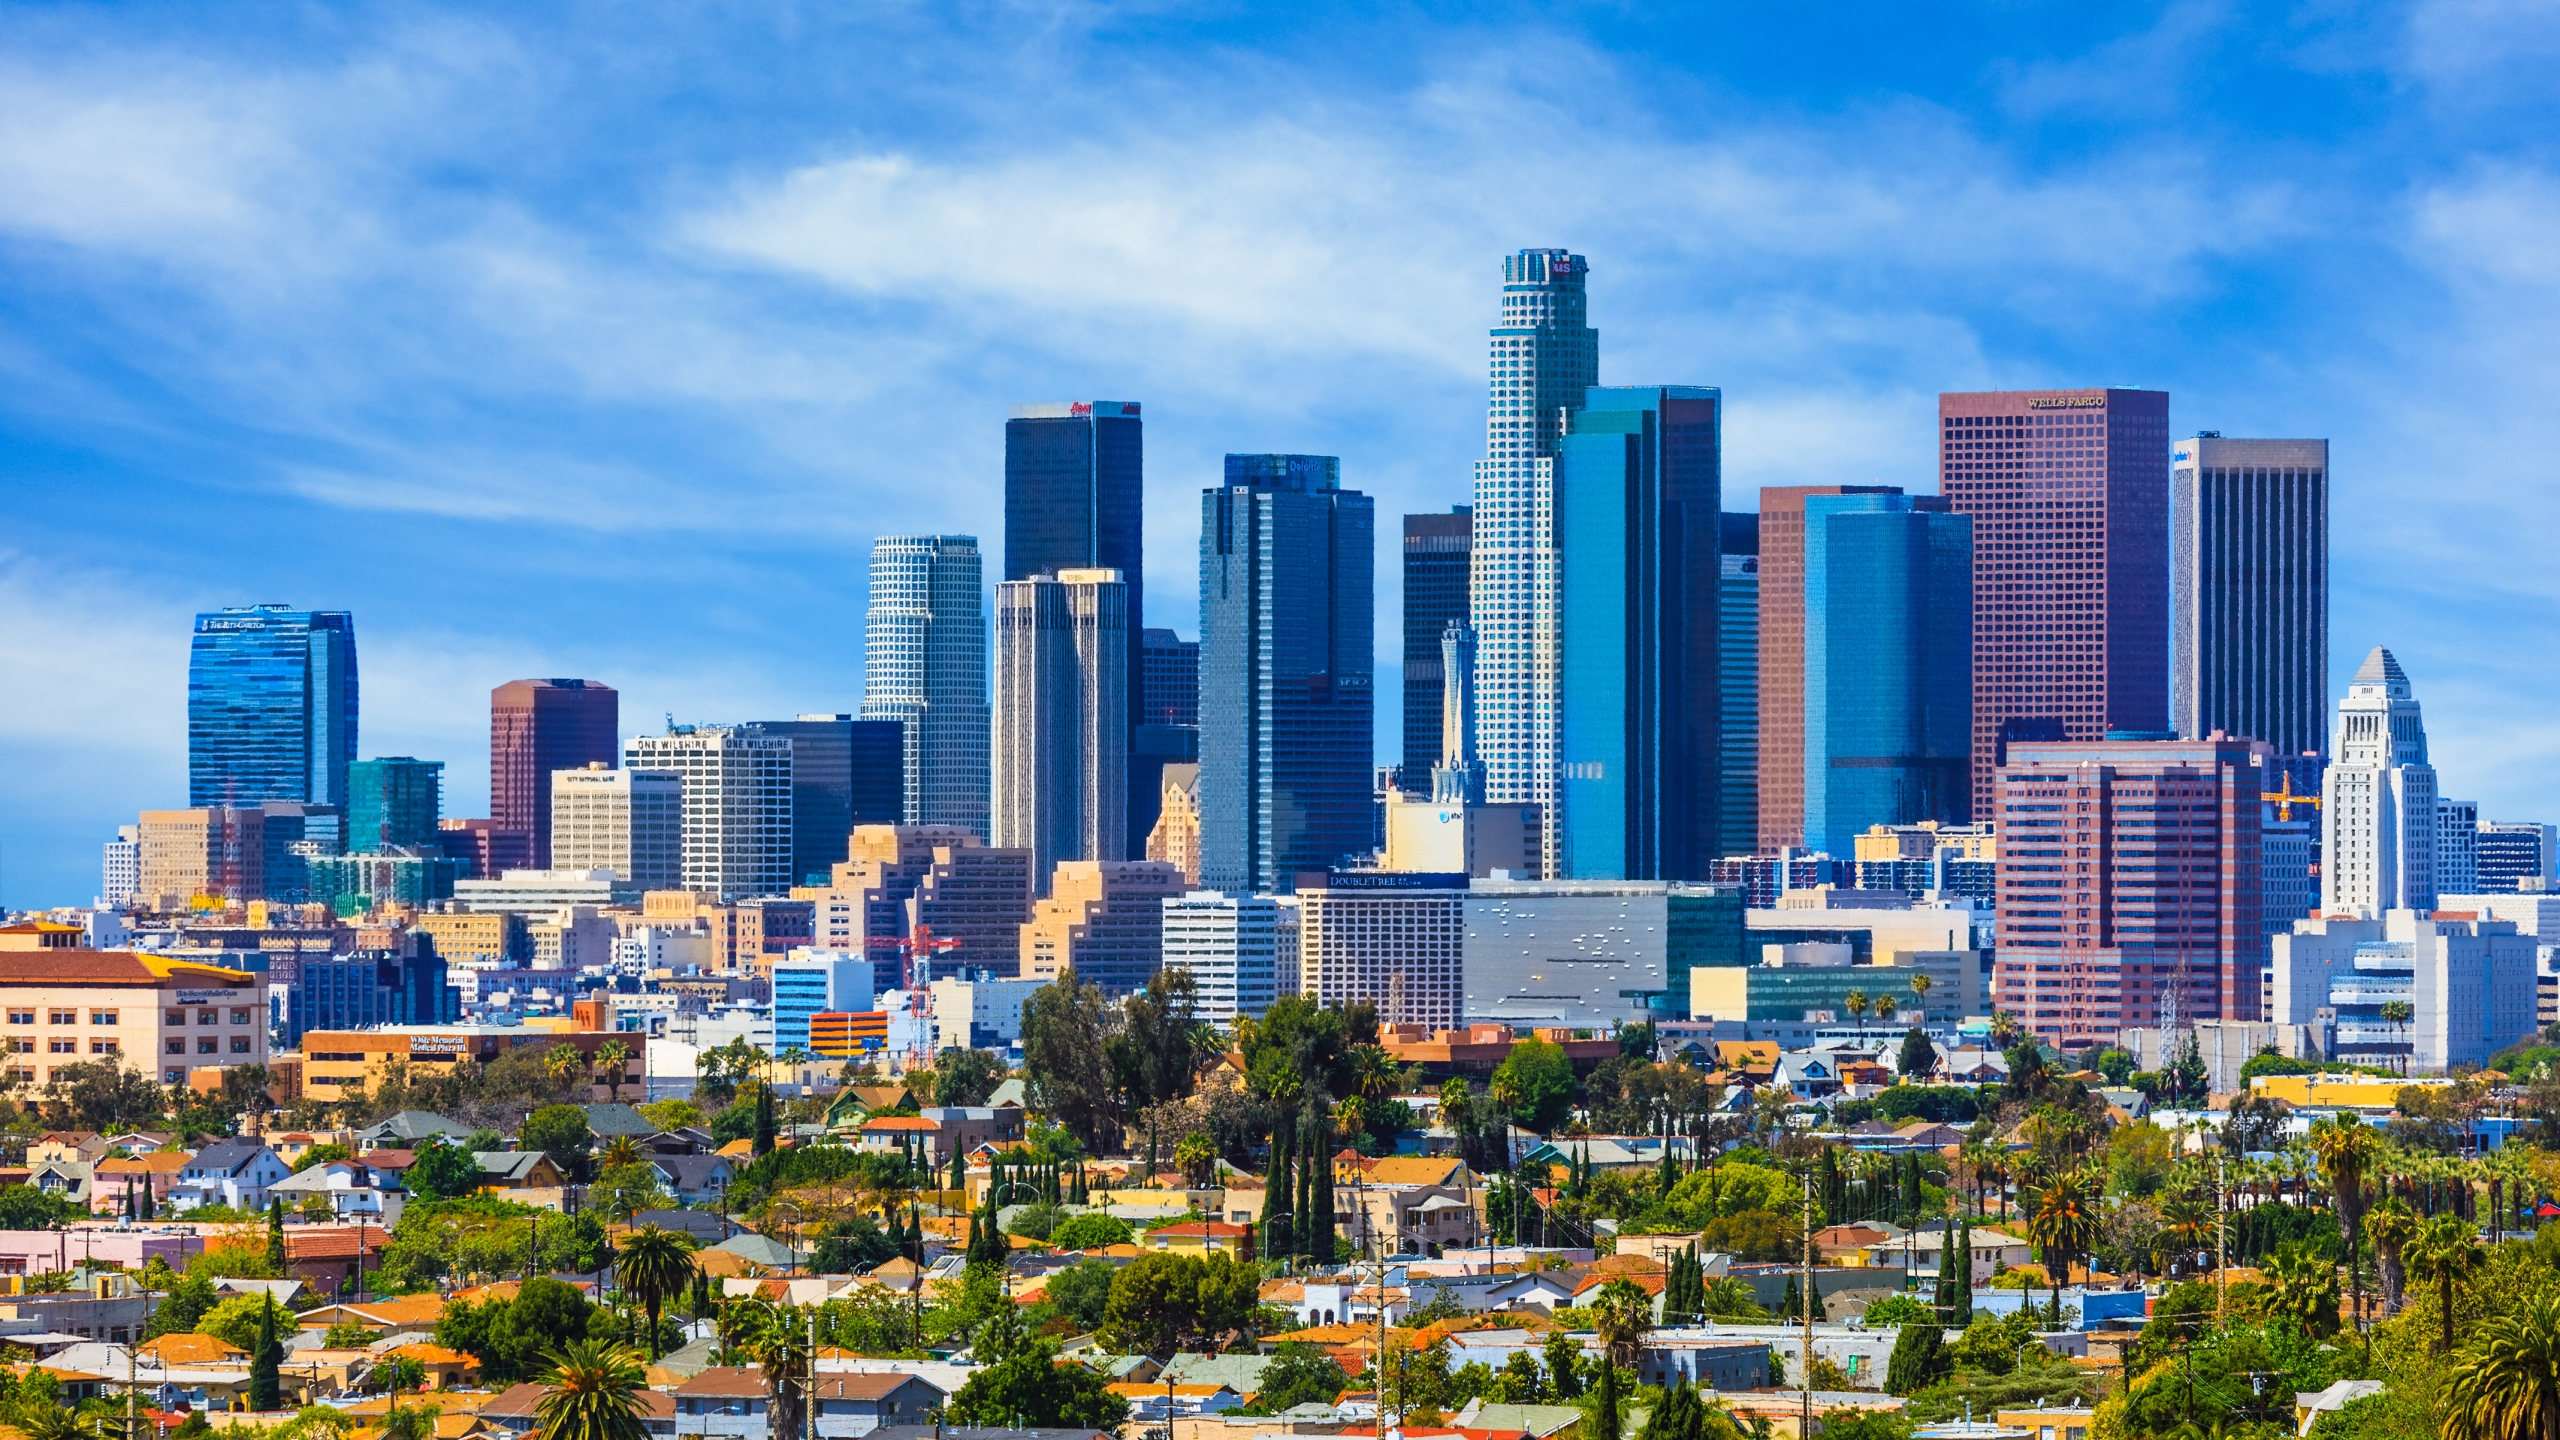 The downtown L.A. skyline is seen in a file photo. (iStock / Getty Images)